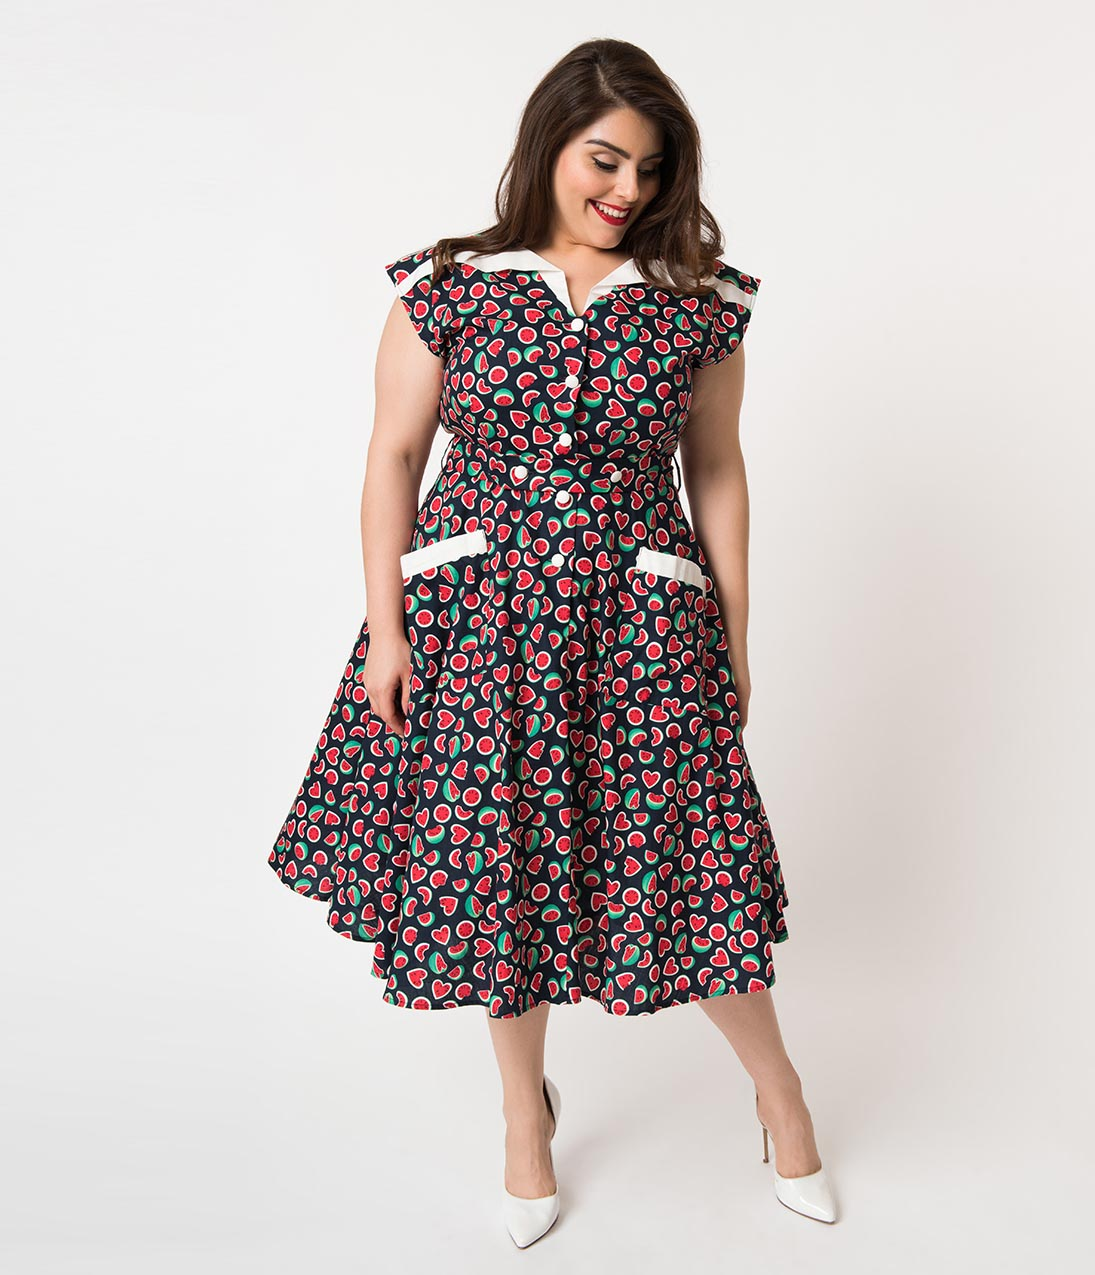 060b60282db 1950s Plus Size Dresses